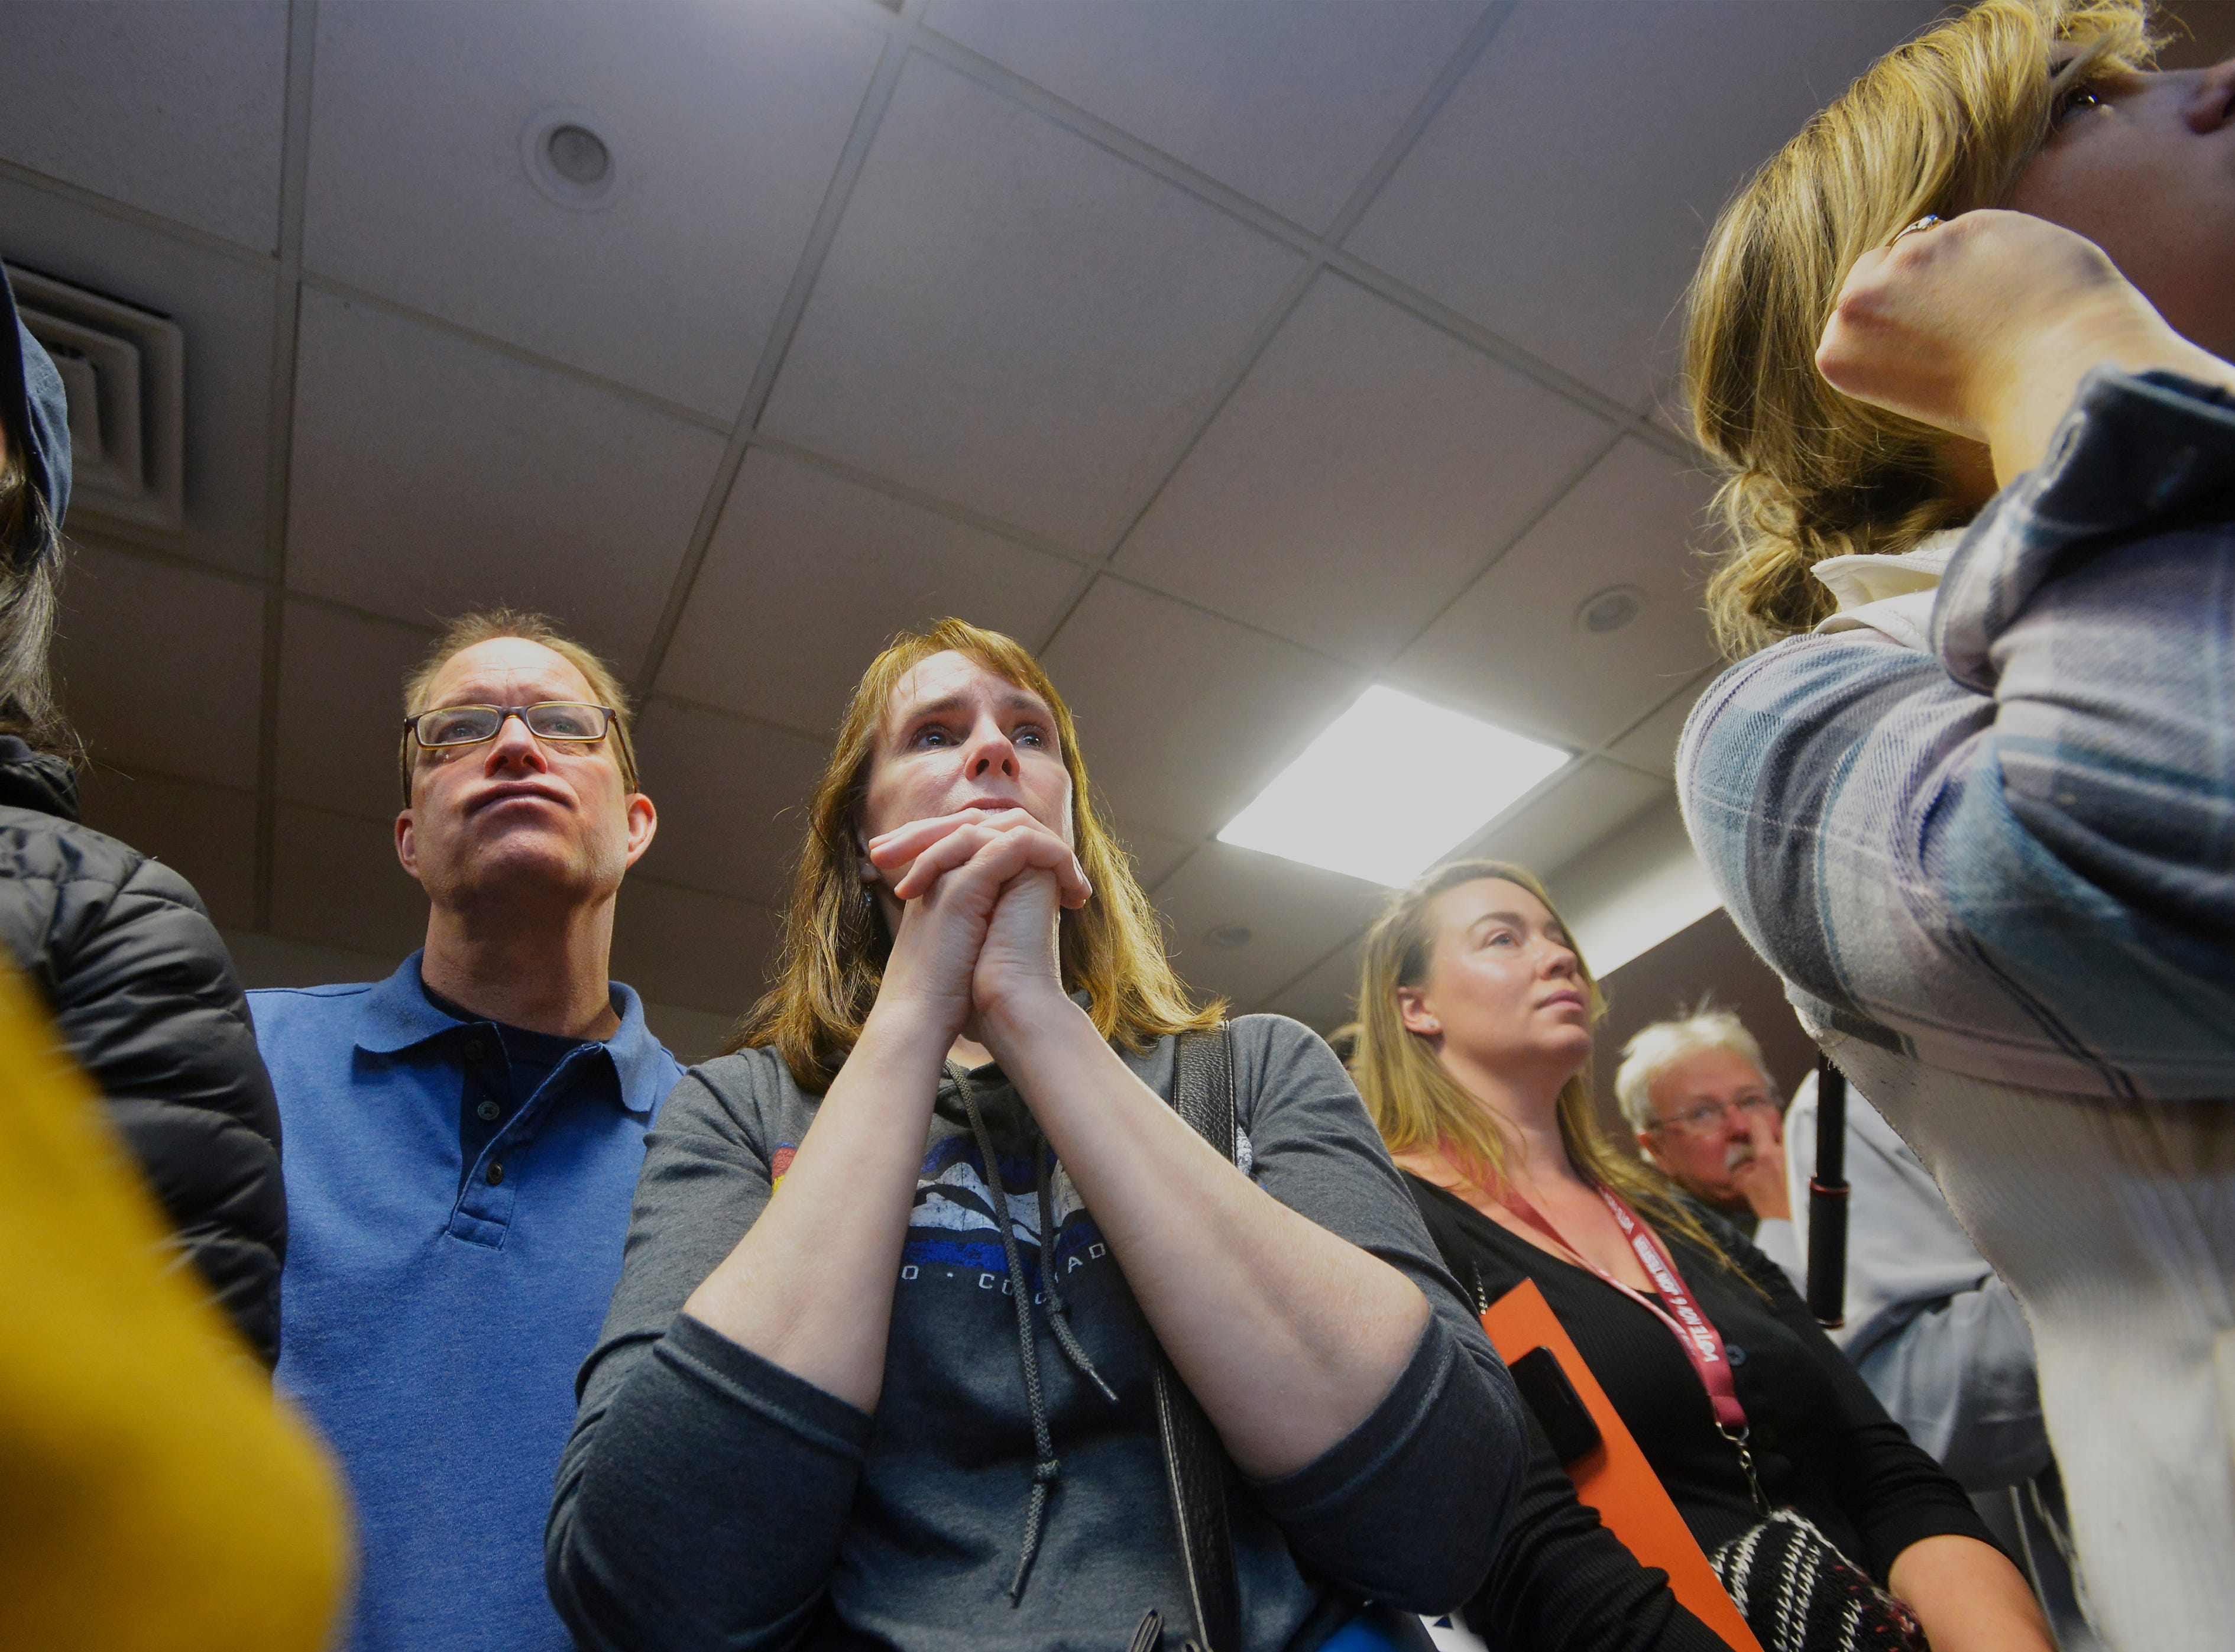 Supporters of Senator Jon Tester look on during his victory rally at the Holiday Inn on Wednesday morning after AP called the senate race in favor of Tester.